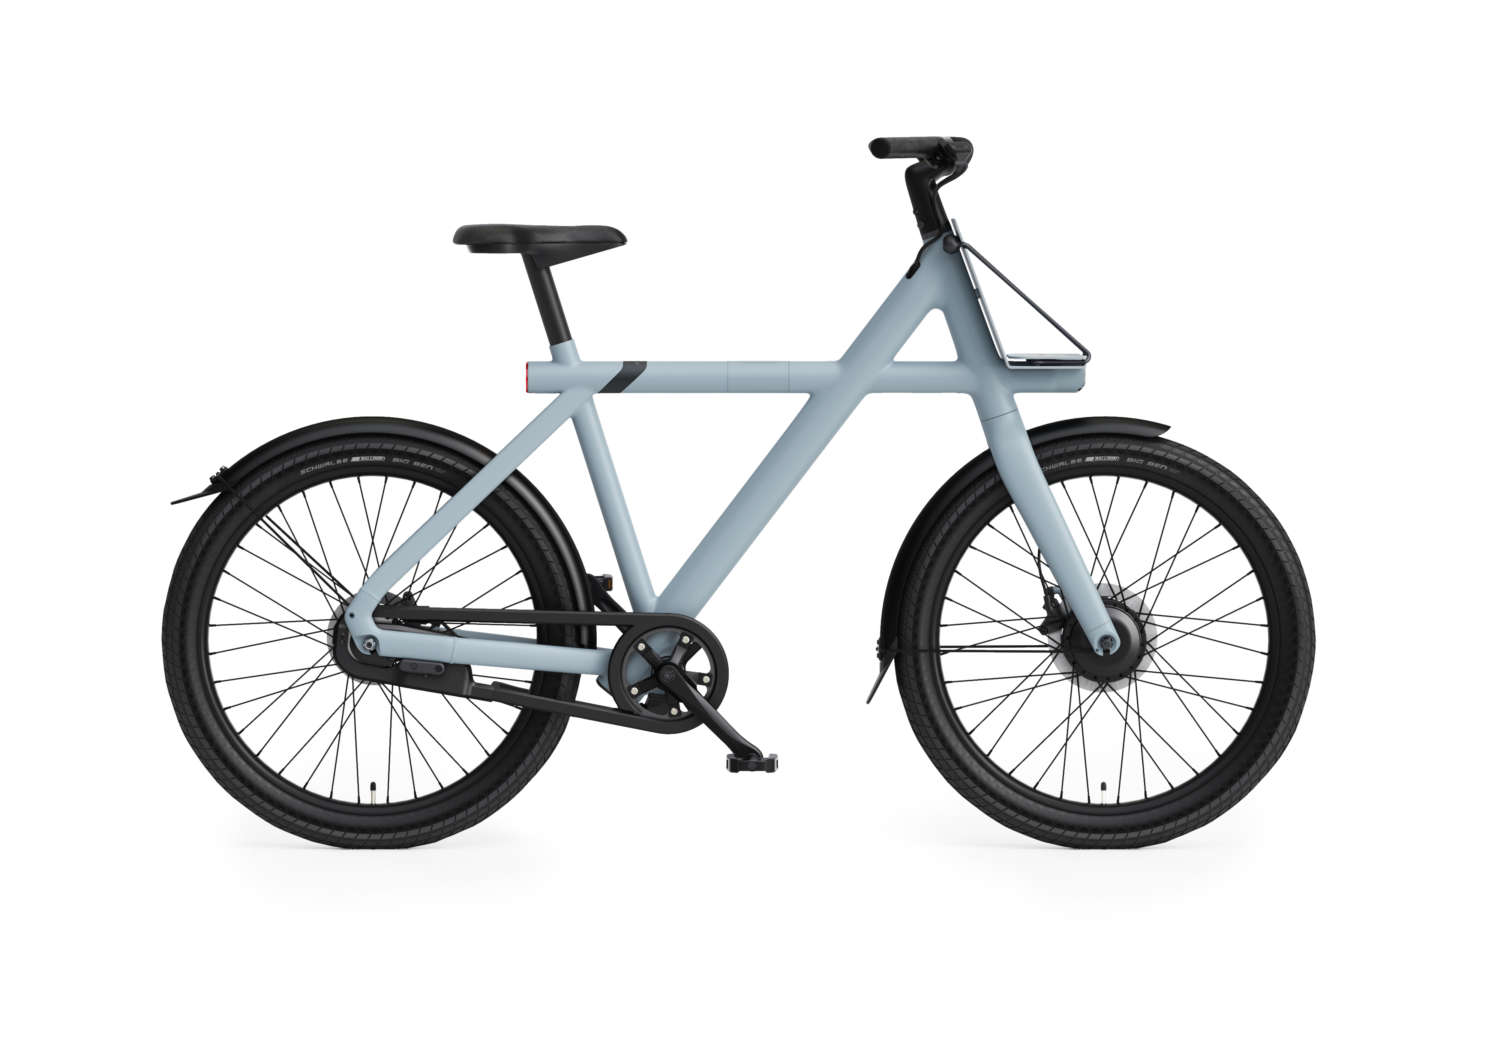 VanMoof X3 light